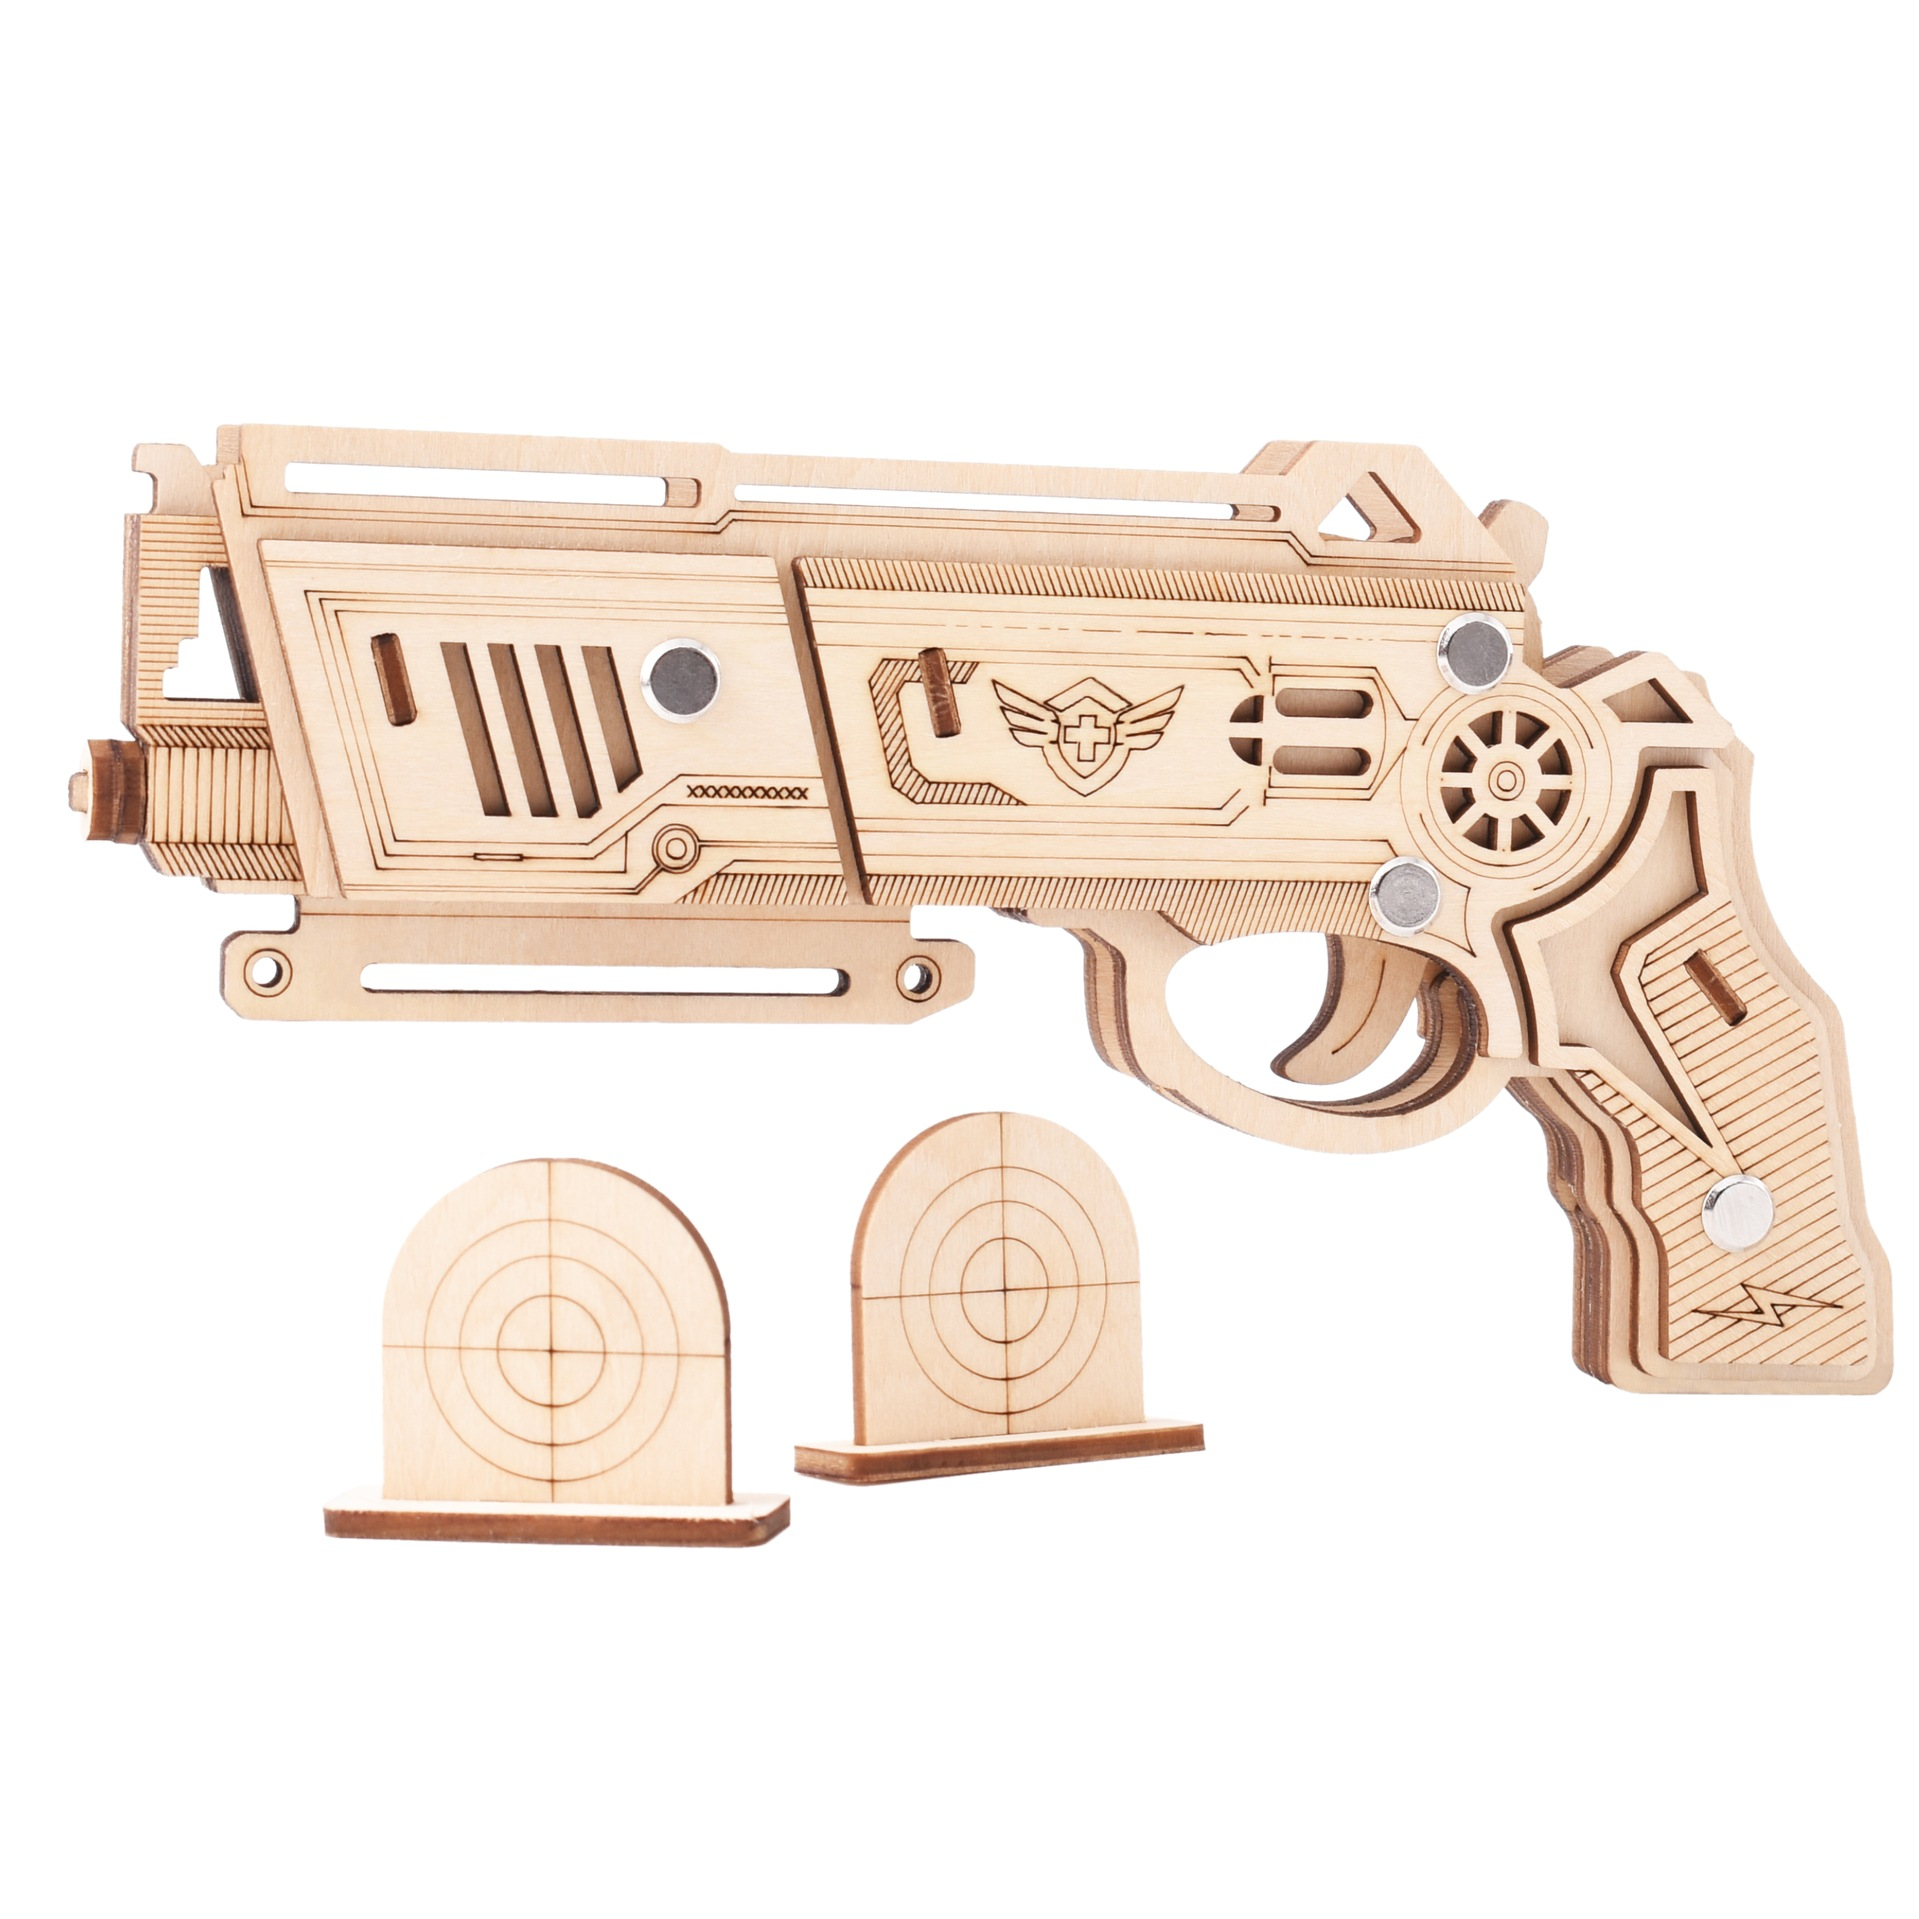 Laser Cutting DIY 3D Wooden Puzzle Woodcraft Assembly Kit Hunting Wolf Eagle Train Dragon Rubber Band Gun For Christmas Gift